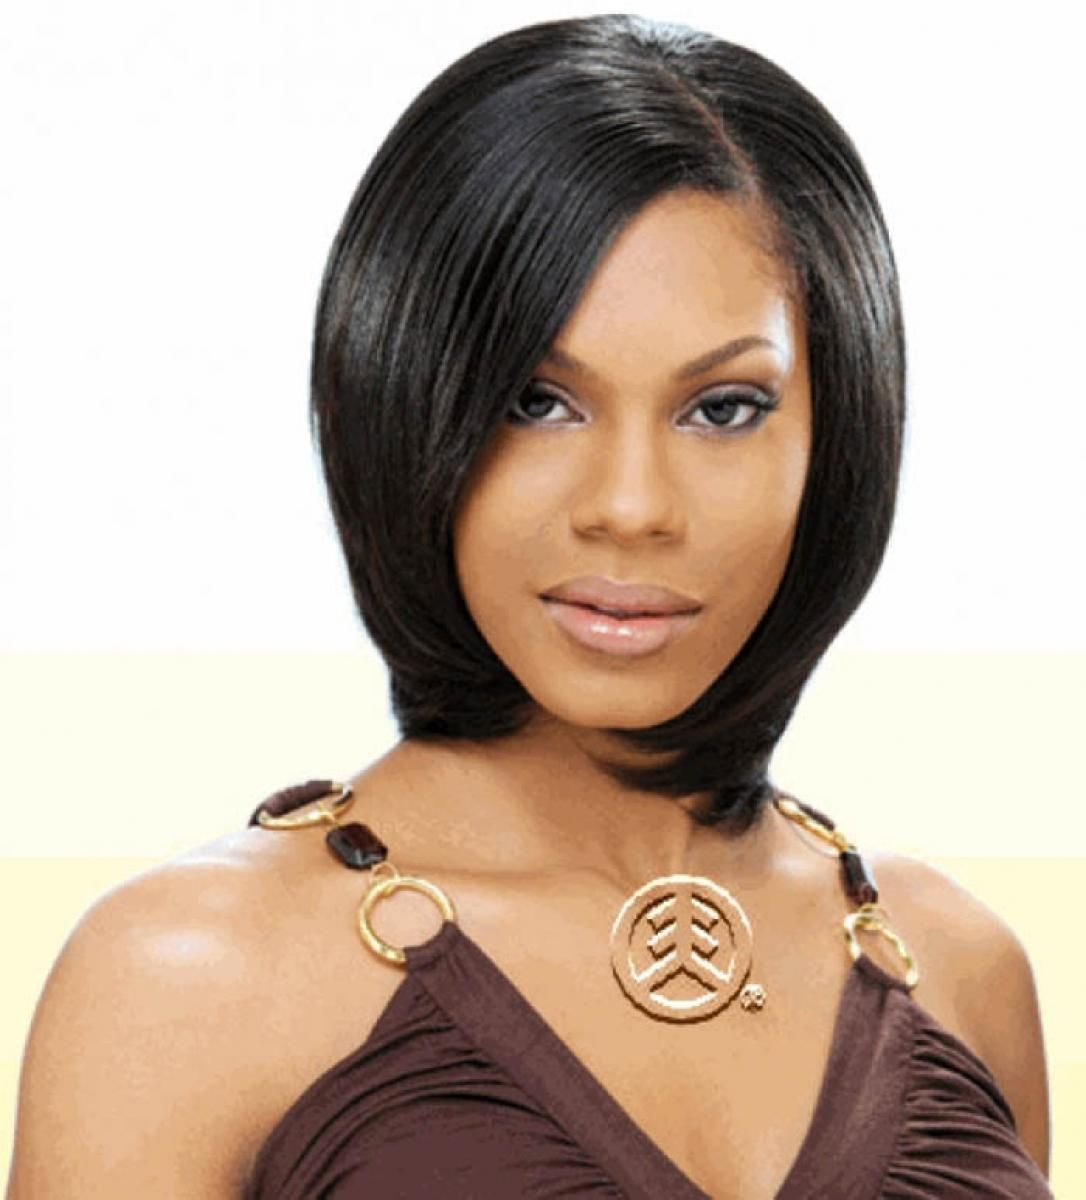 New Tremendous Short Bob Straight Haircut African American 5 Ideas With Pictures Original 1024 x 768